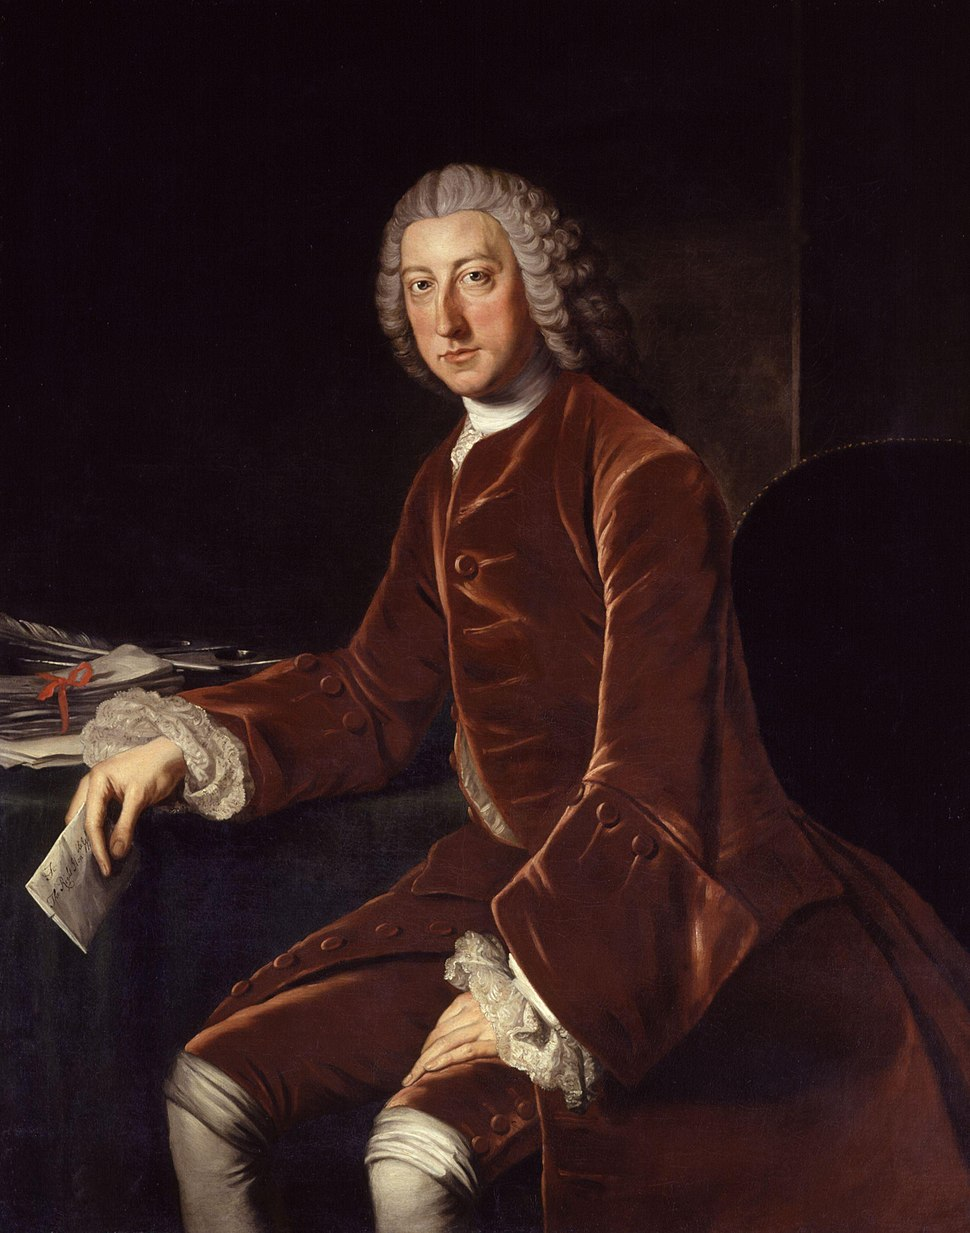 William Pitt, 1st Earl of Chatham by William Hoare